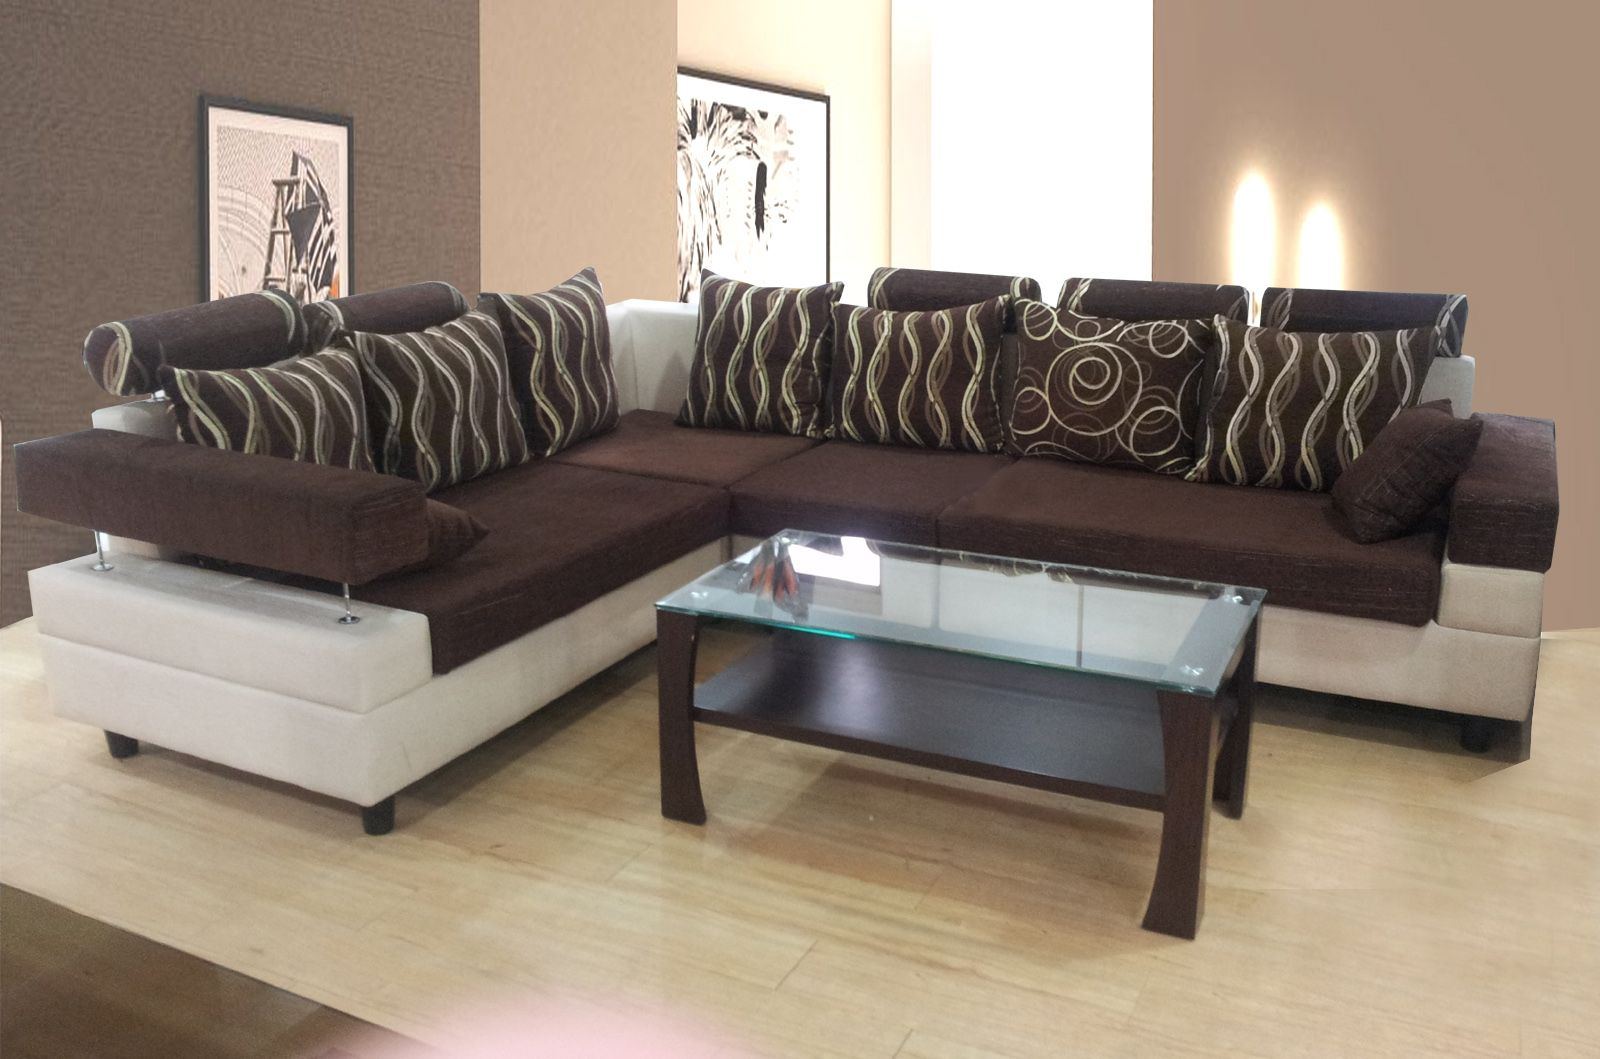 Affordable And Good Quality Nairobi Sofa Set Designs More Here